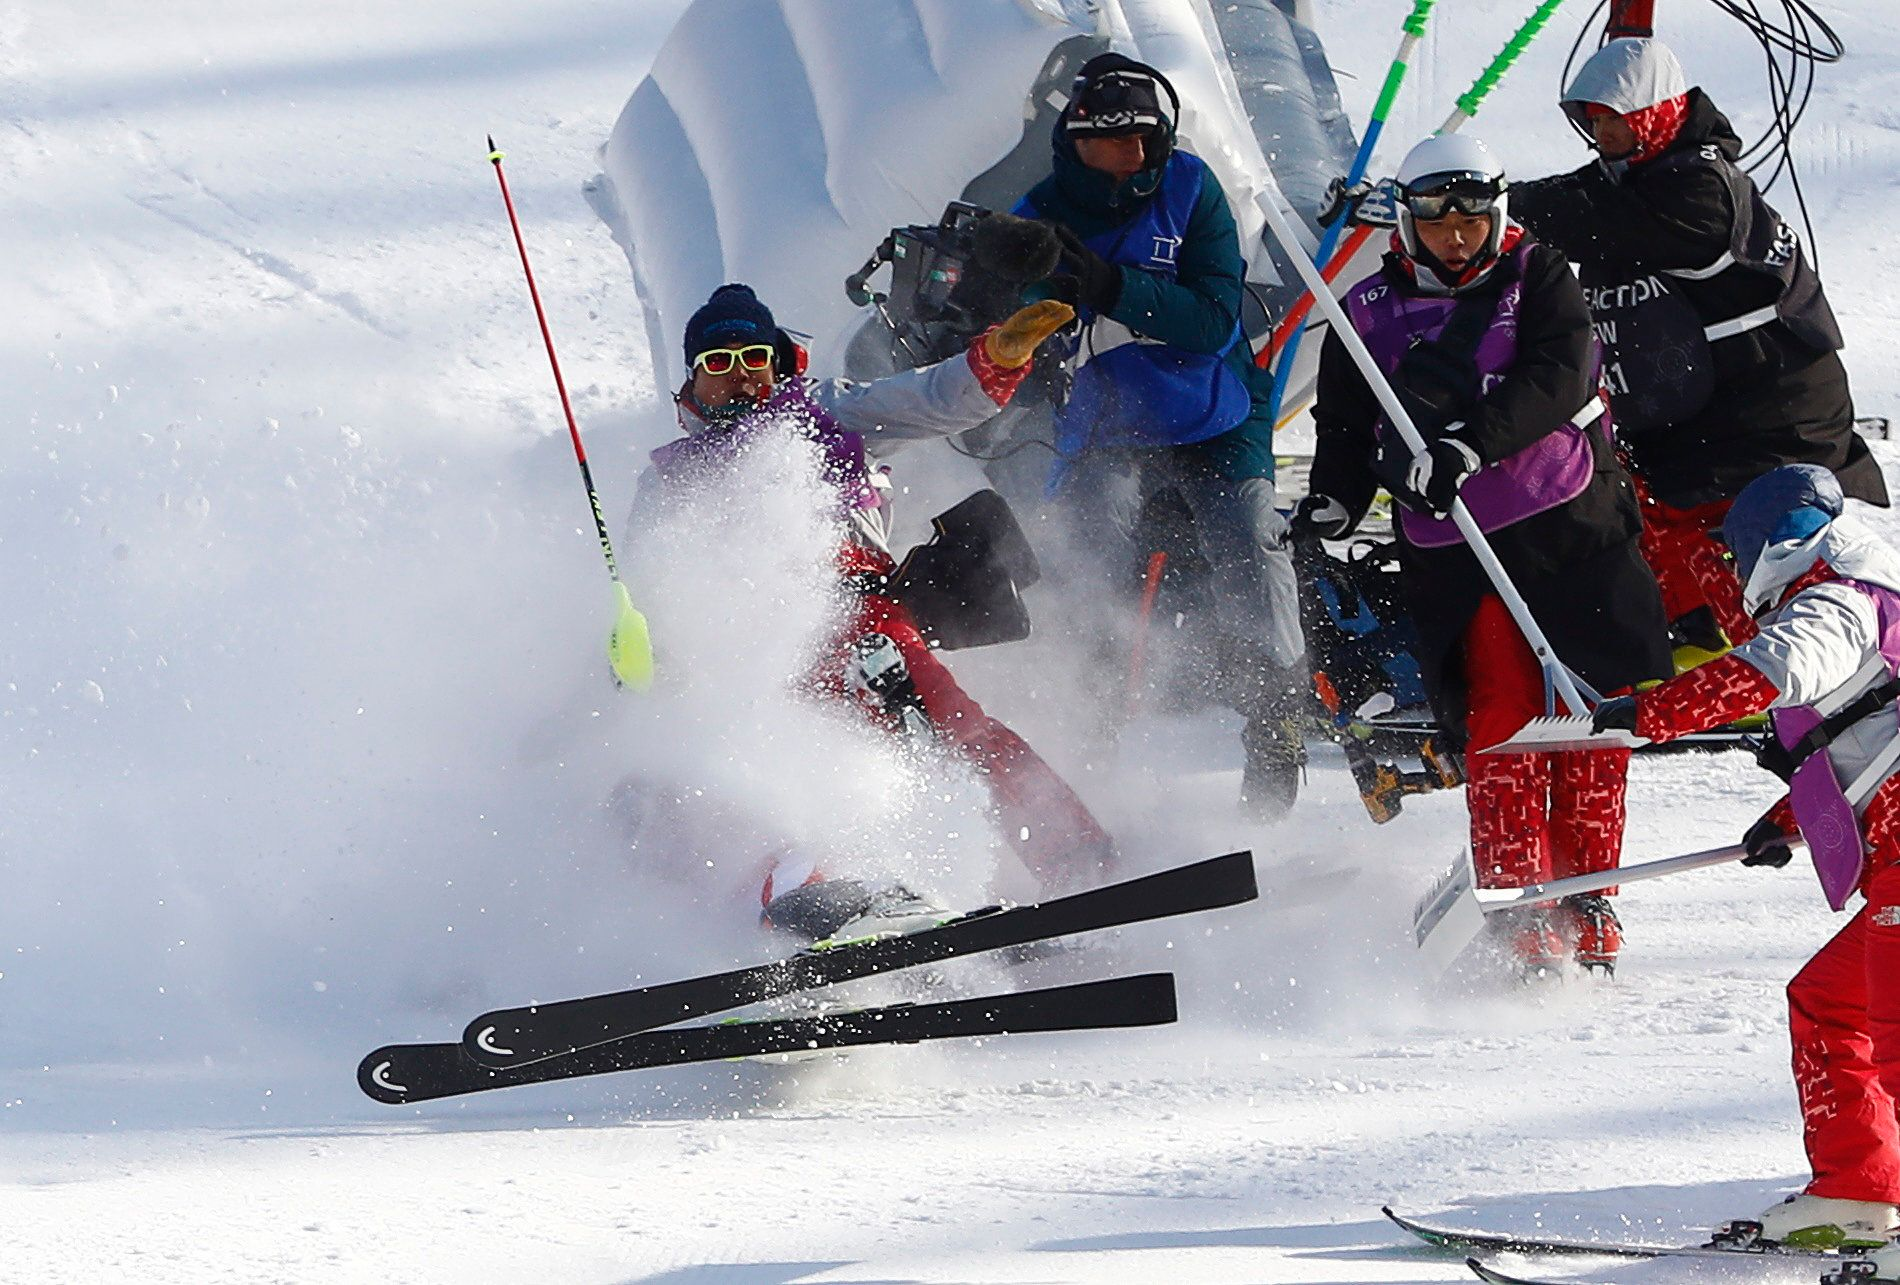 Austria's Matthias Mayer crashed into media personnel during the men's alpine combined event on Tuesday.